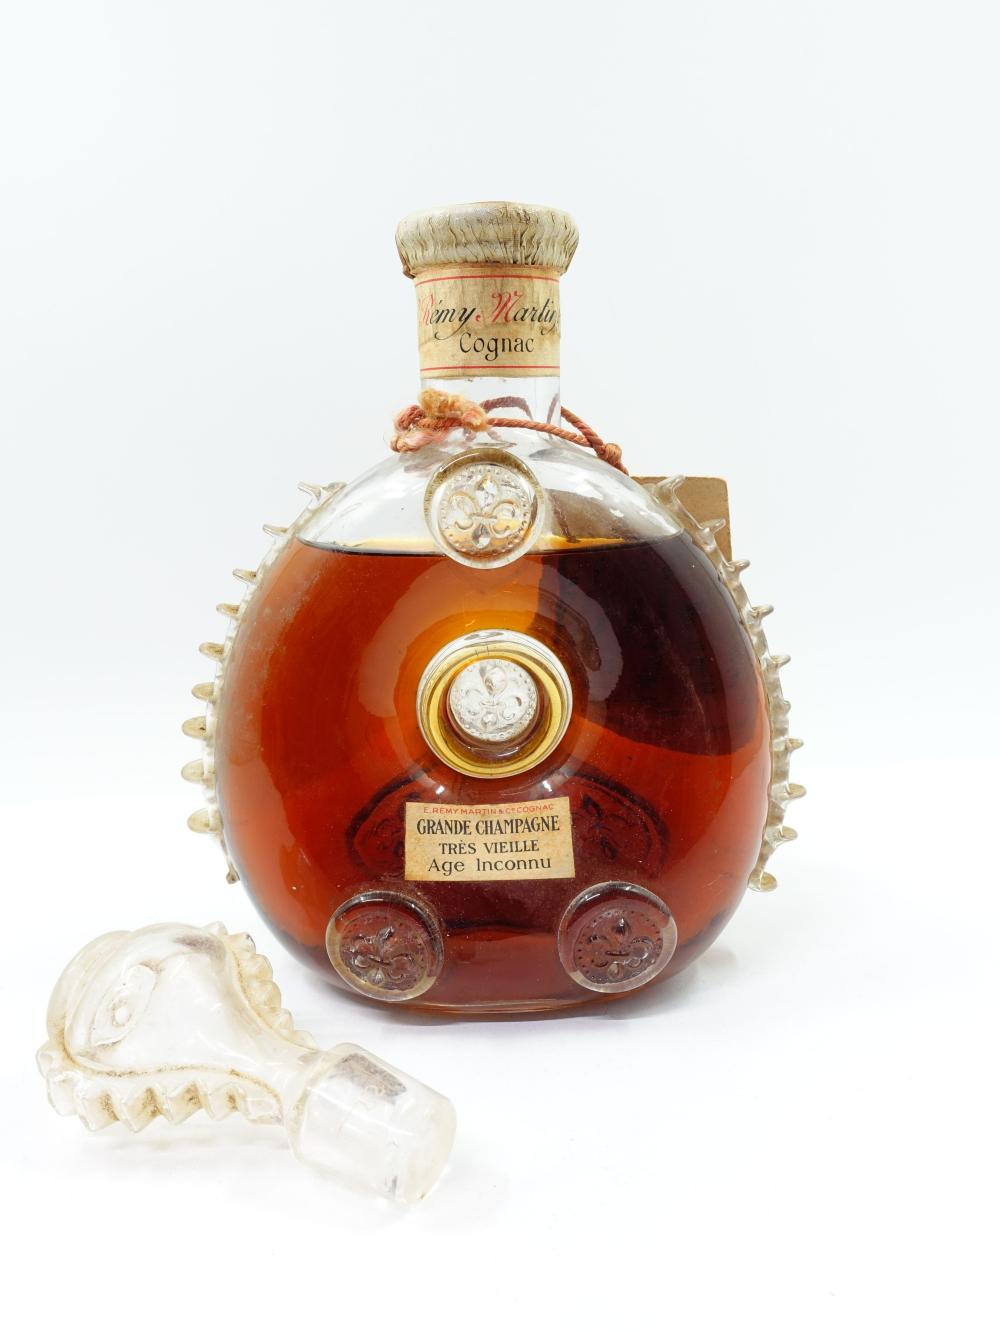 1 bouteille COGNAC REMY MARTIN LOUIS XIII Grande Champagne